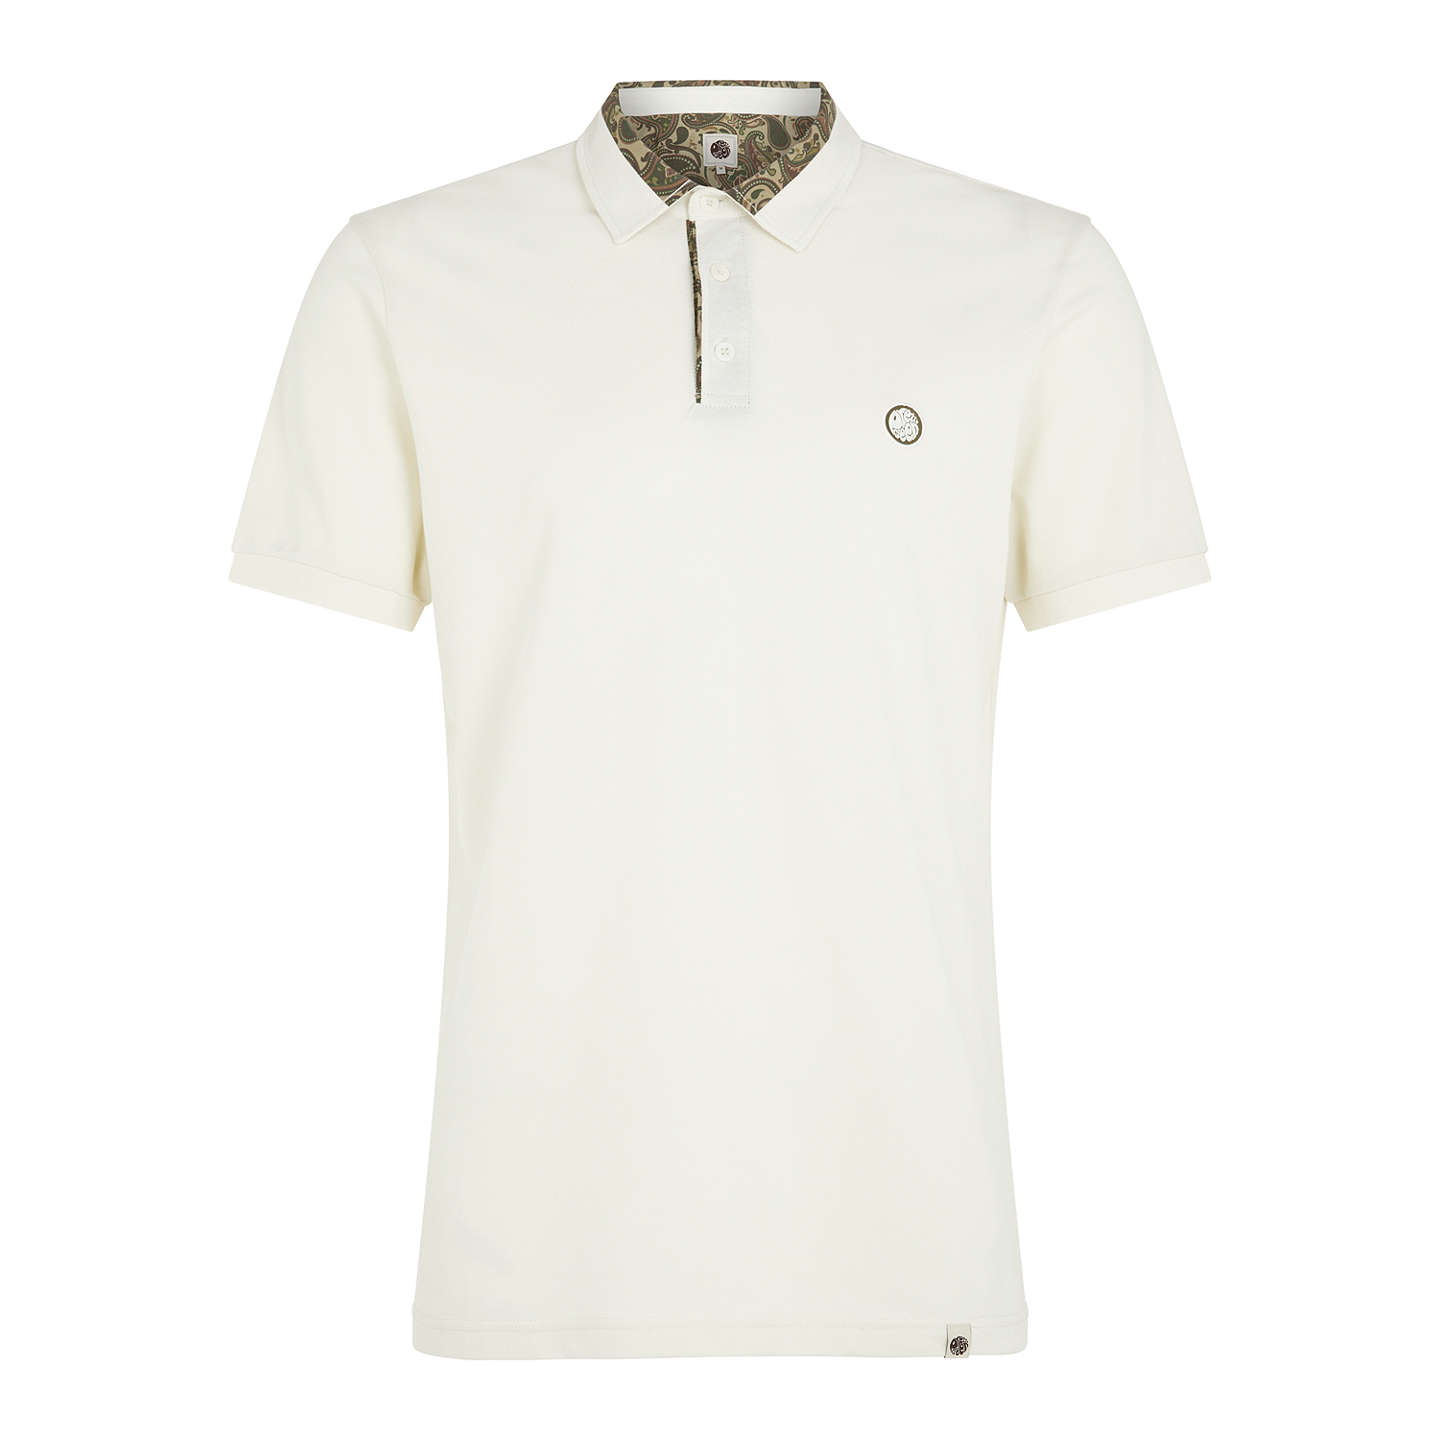 BuyPretty Green Ryder Polo, Stone, S Online at johnlewis.com